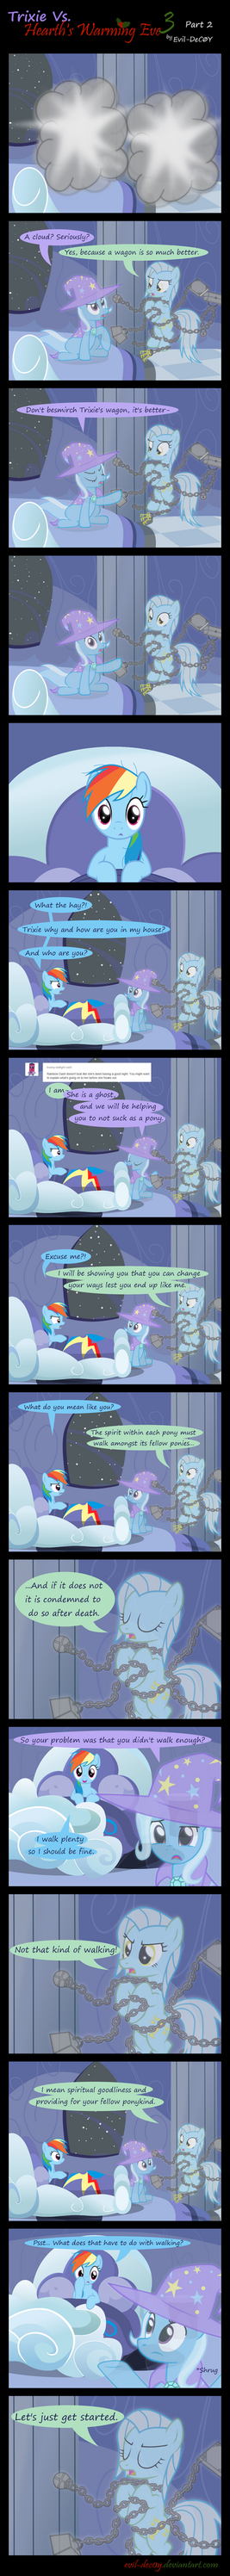 Trixie Vs. Hearth's Warming eve 3 (part 2) by Evil-DeC0Y